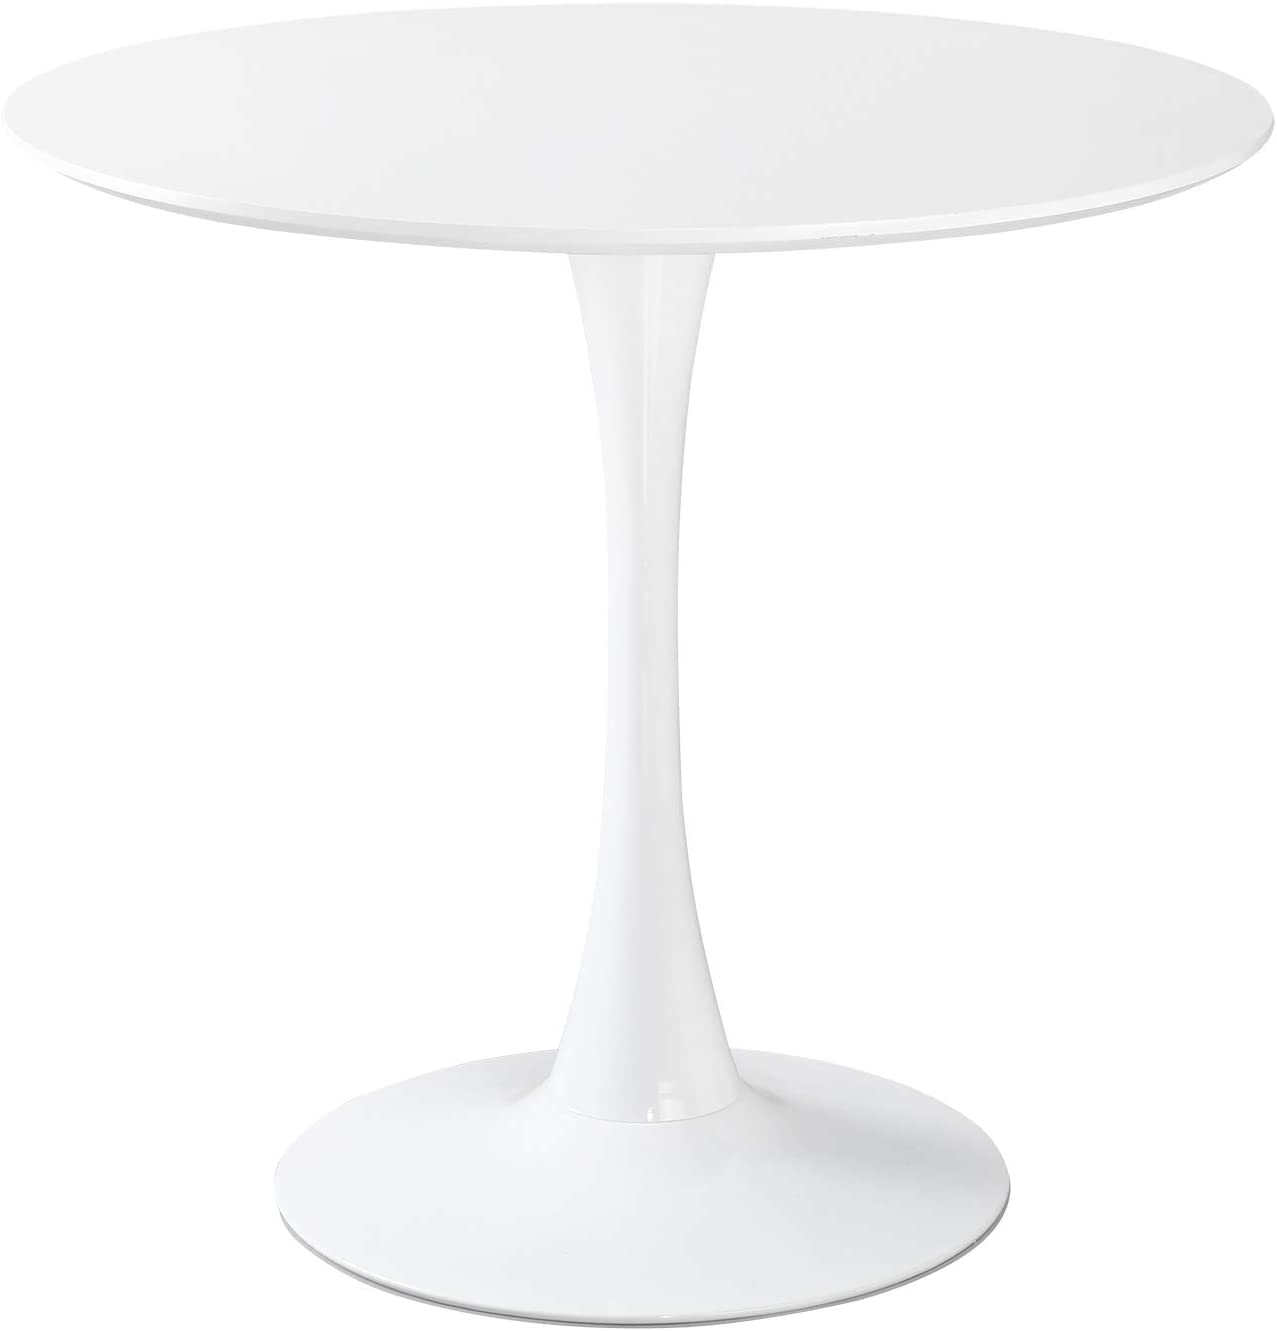 "GreenForest Round Dining Table 32"" Mid-Century Modern Tulip Leisure Coffee Table with Metal Pedestal Base in White"